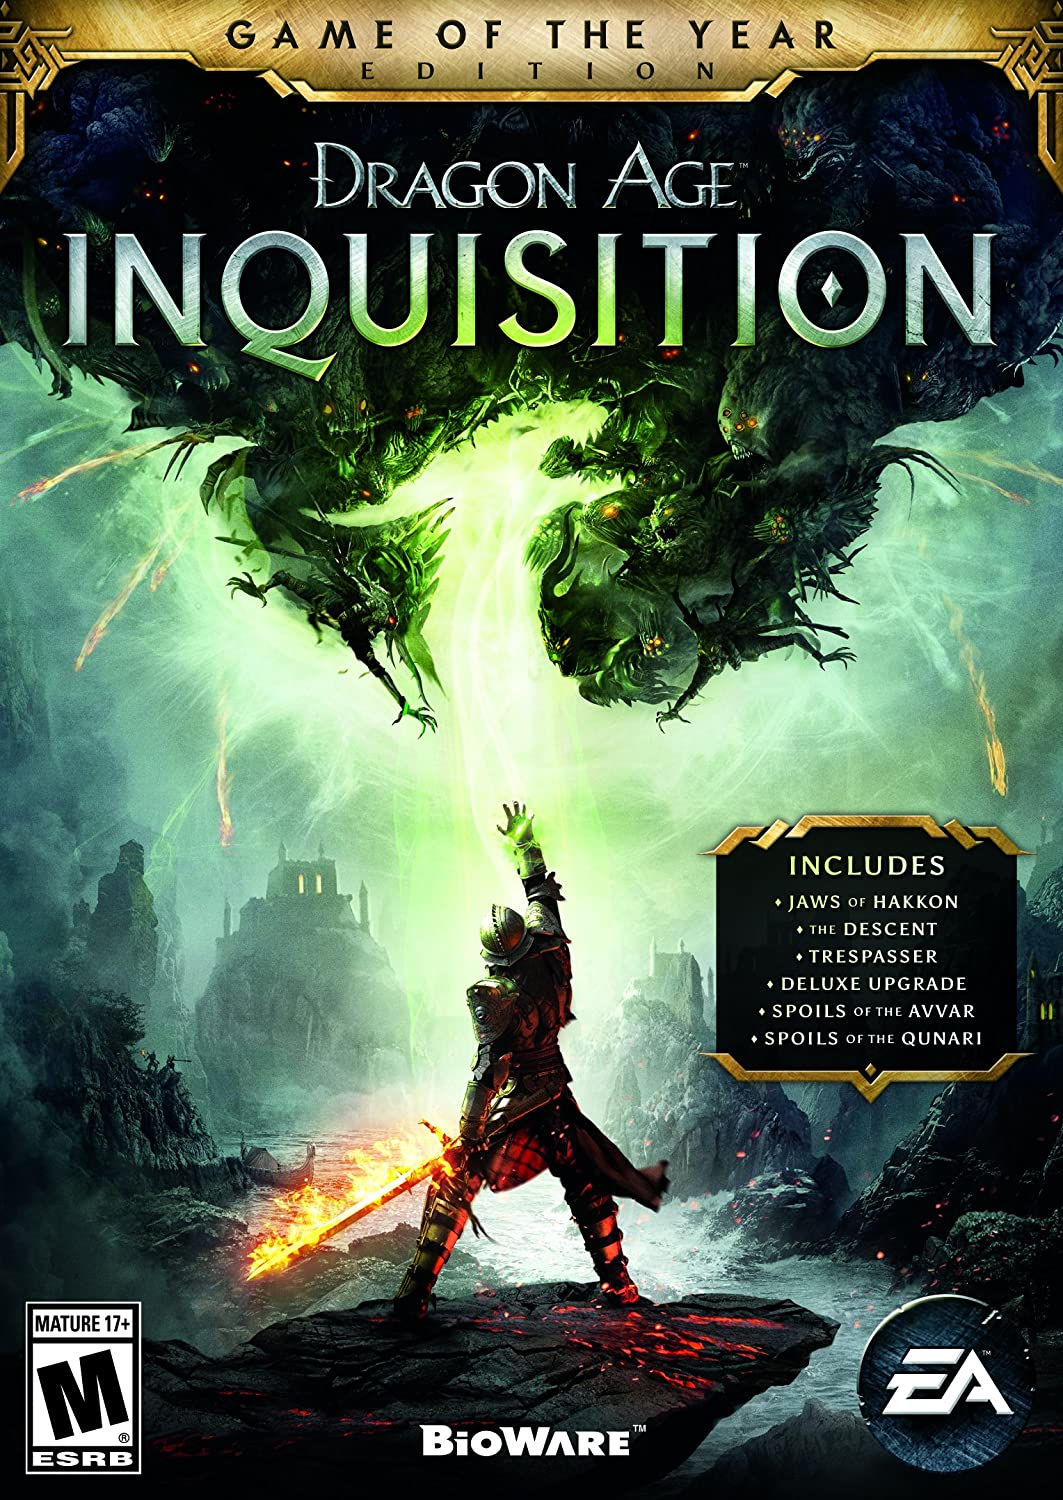 Dragon Age: Inquistion - Game of the Year Edition - PC (Digital Code)